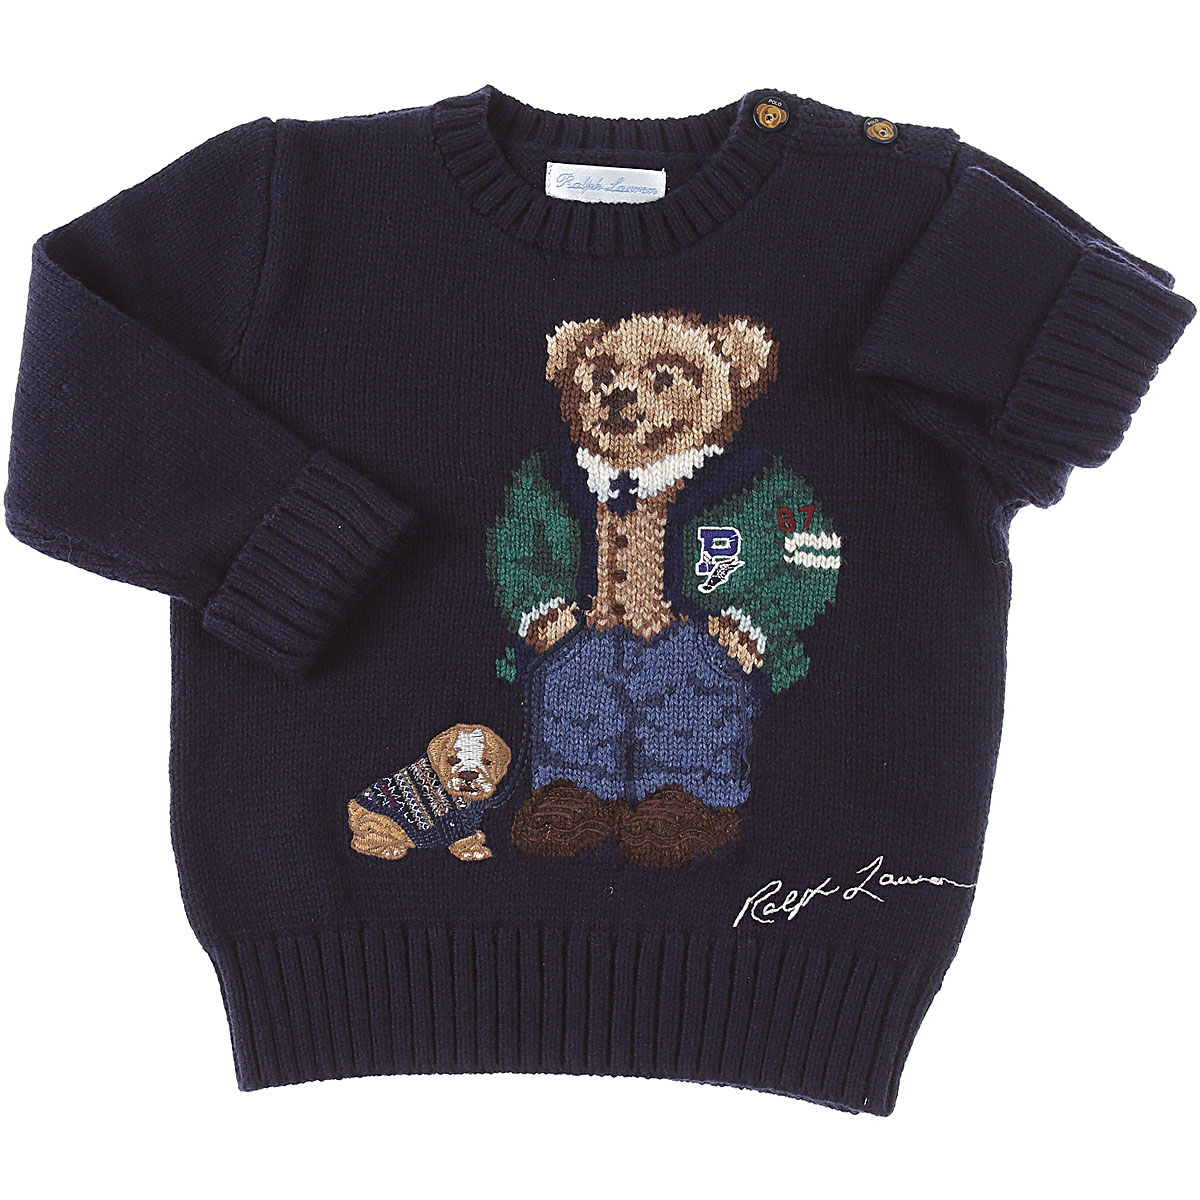 Ralph Lauren Baby Sweaters for Boys On Sale, navy, Cotton, 2019, 12 M 18M 2Y 9M